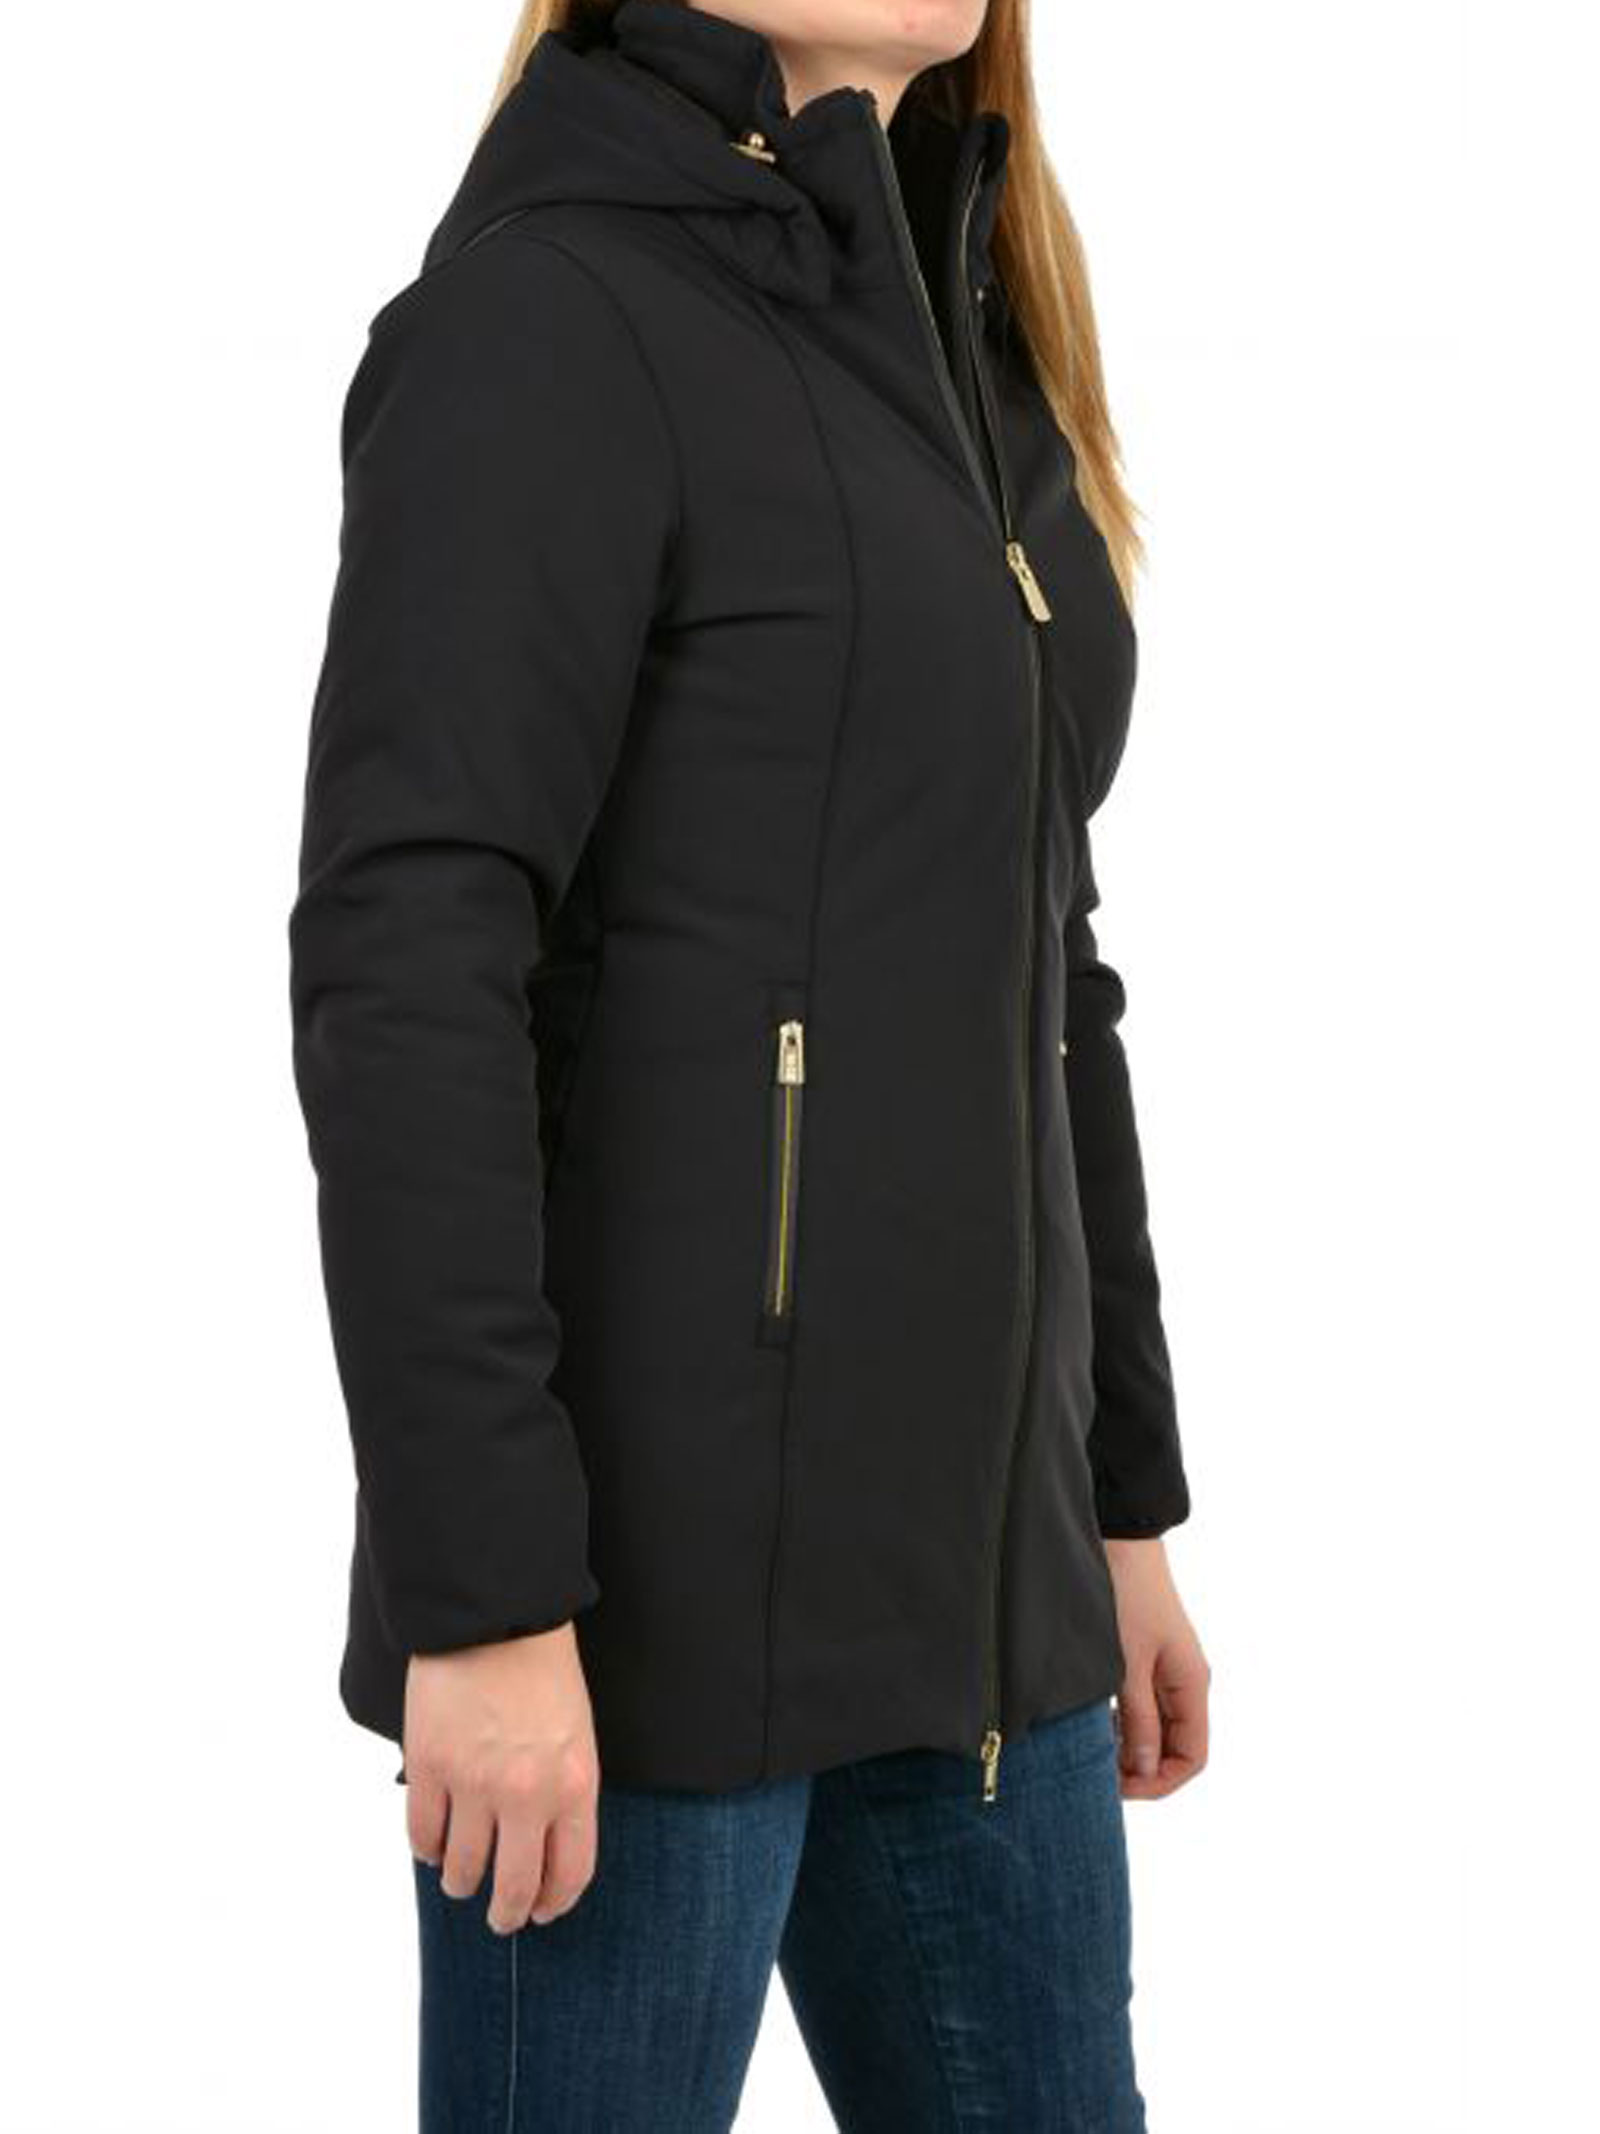 PIUMINO YES ZEE YES ZEE | Cappotto | O057-L3000801